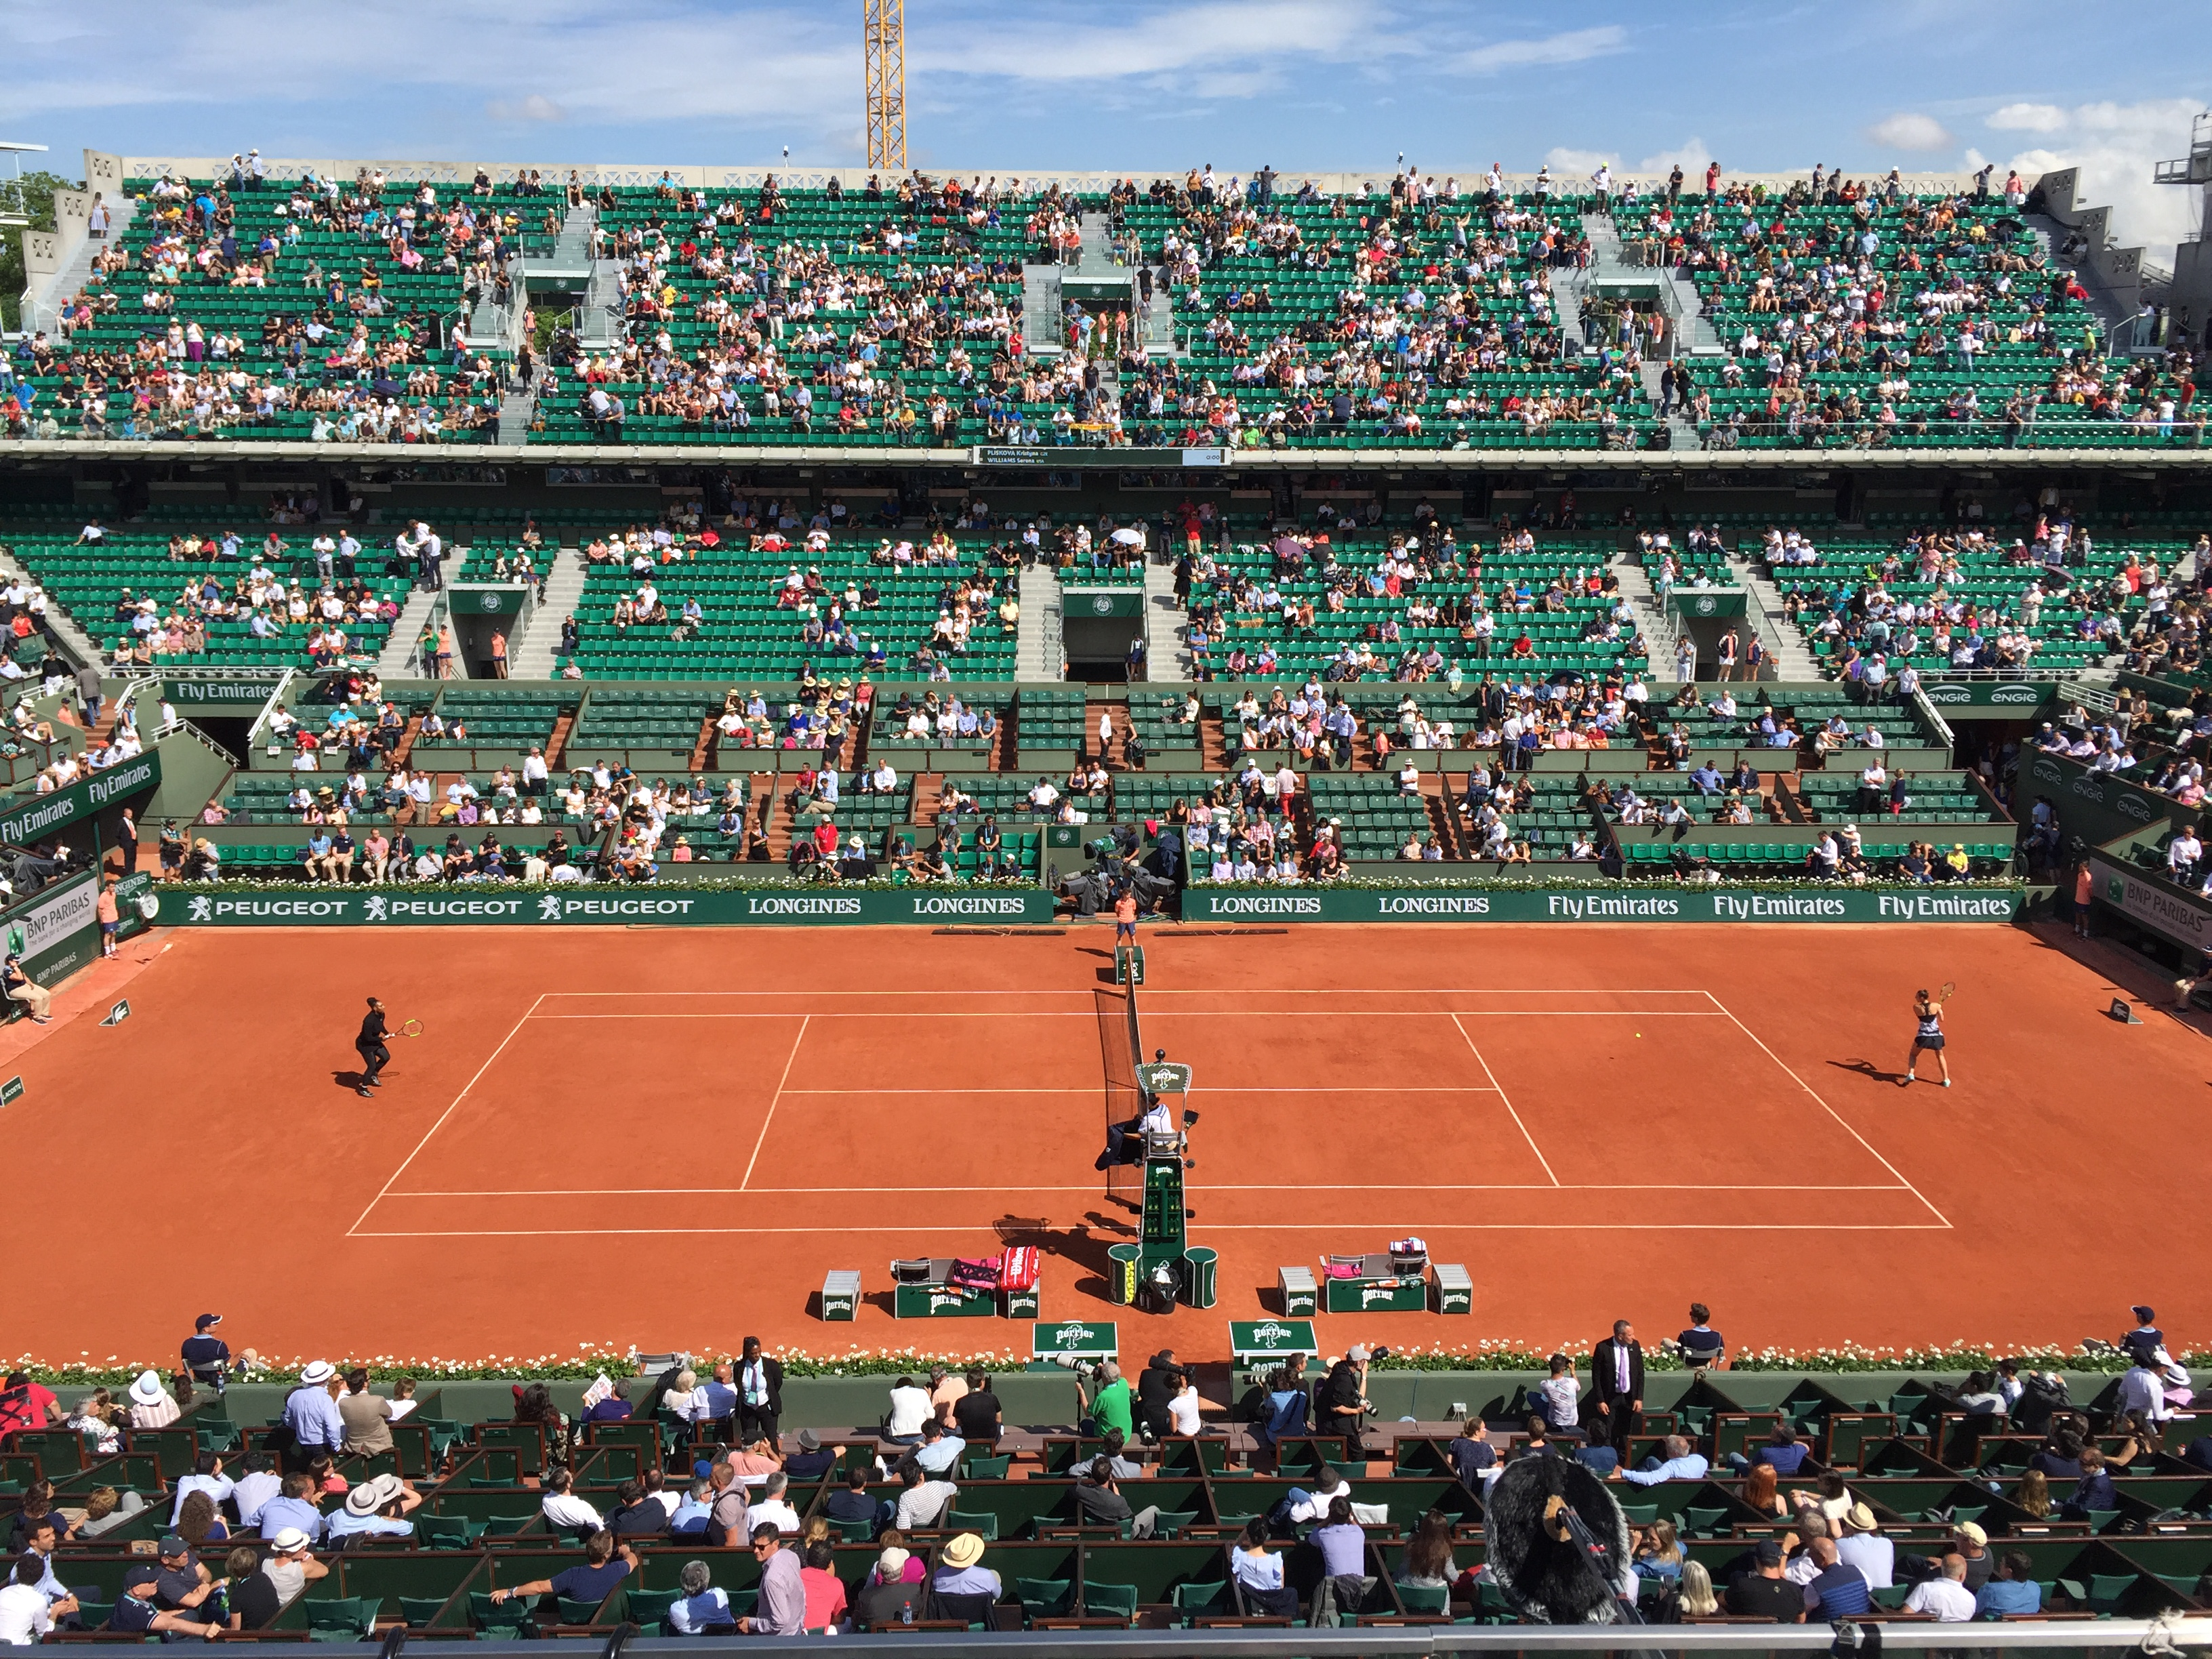 Attending the French Open: BYOBaguette and Mind Your Manners